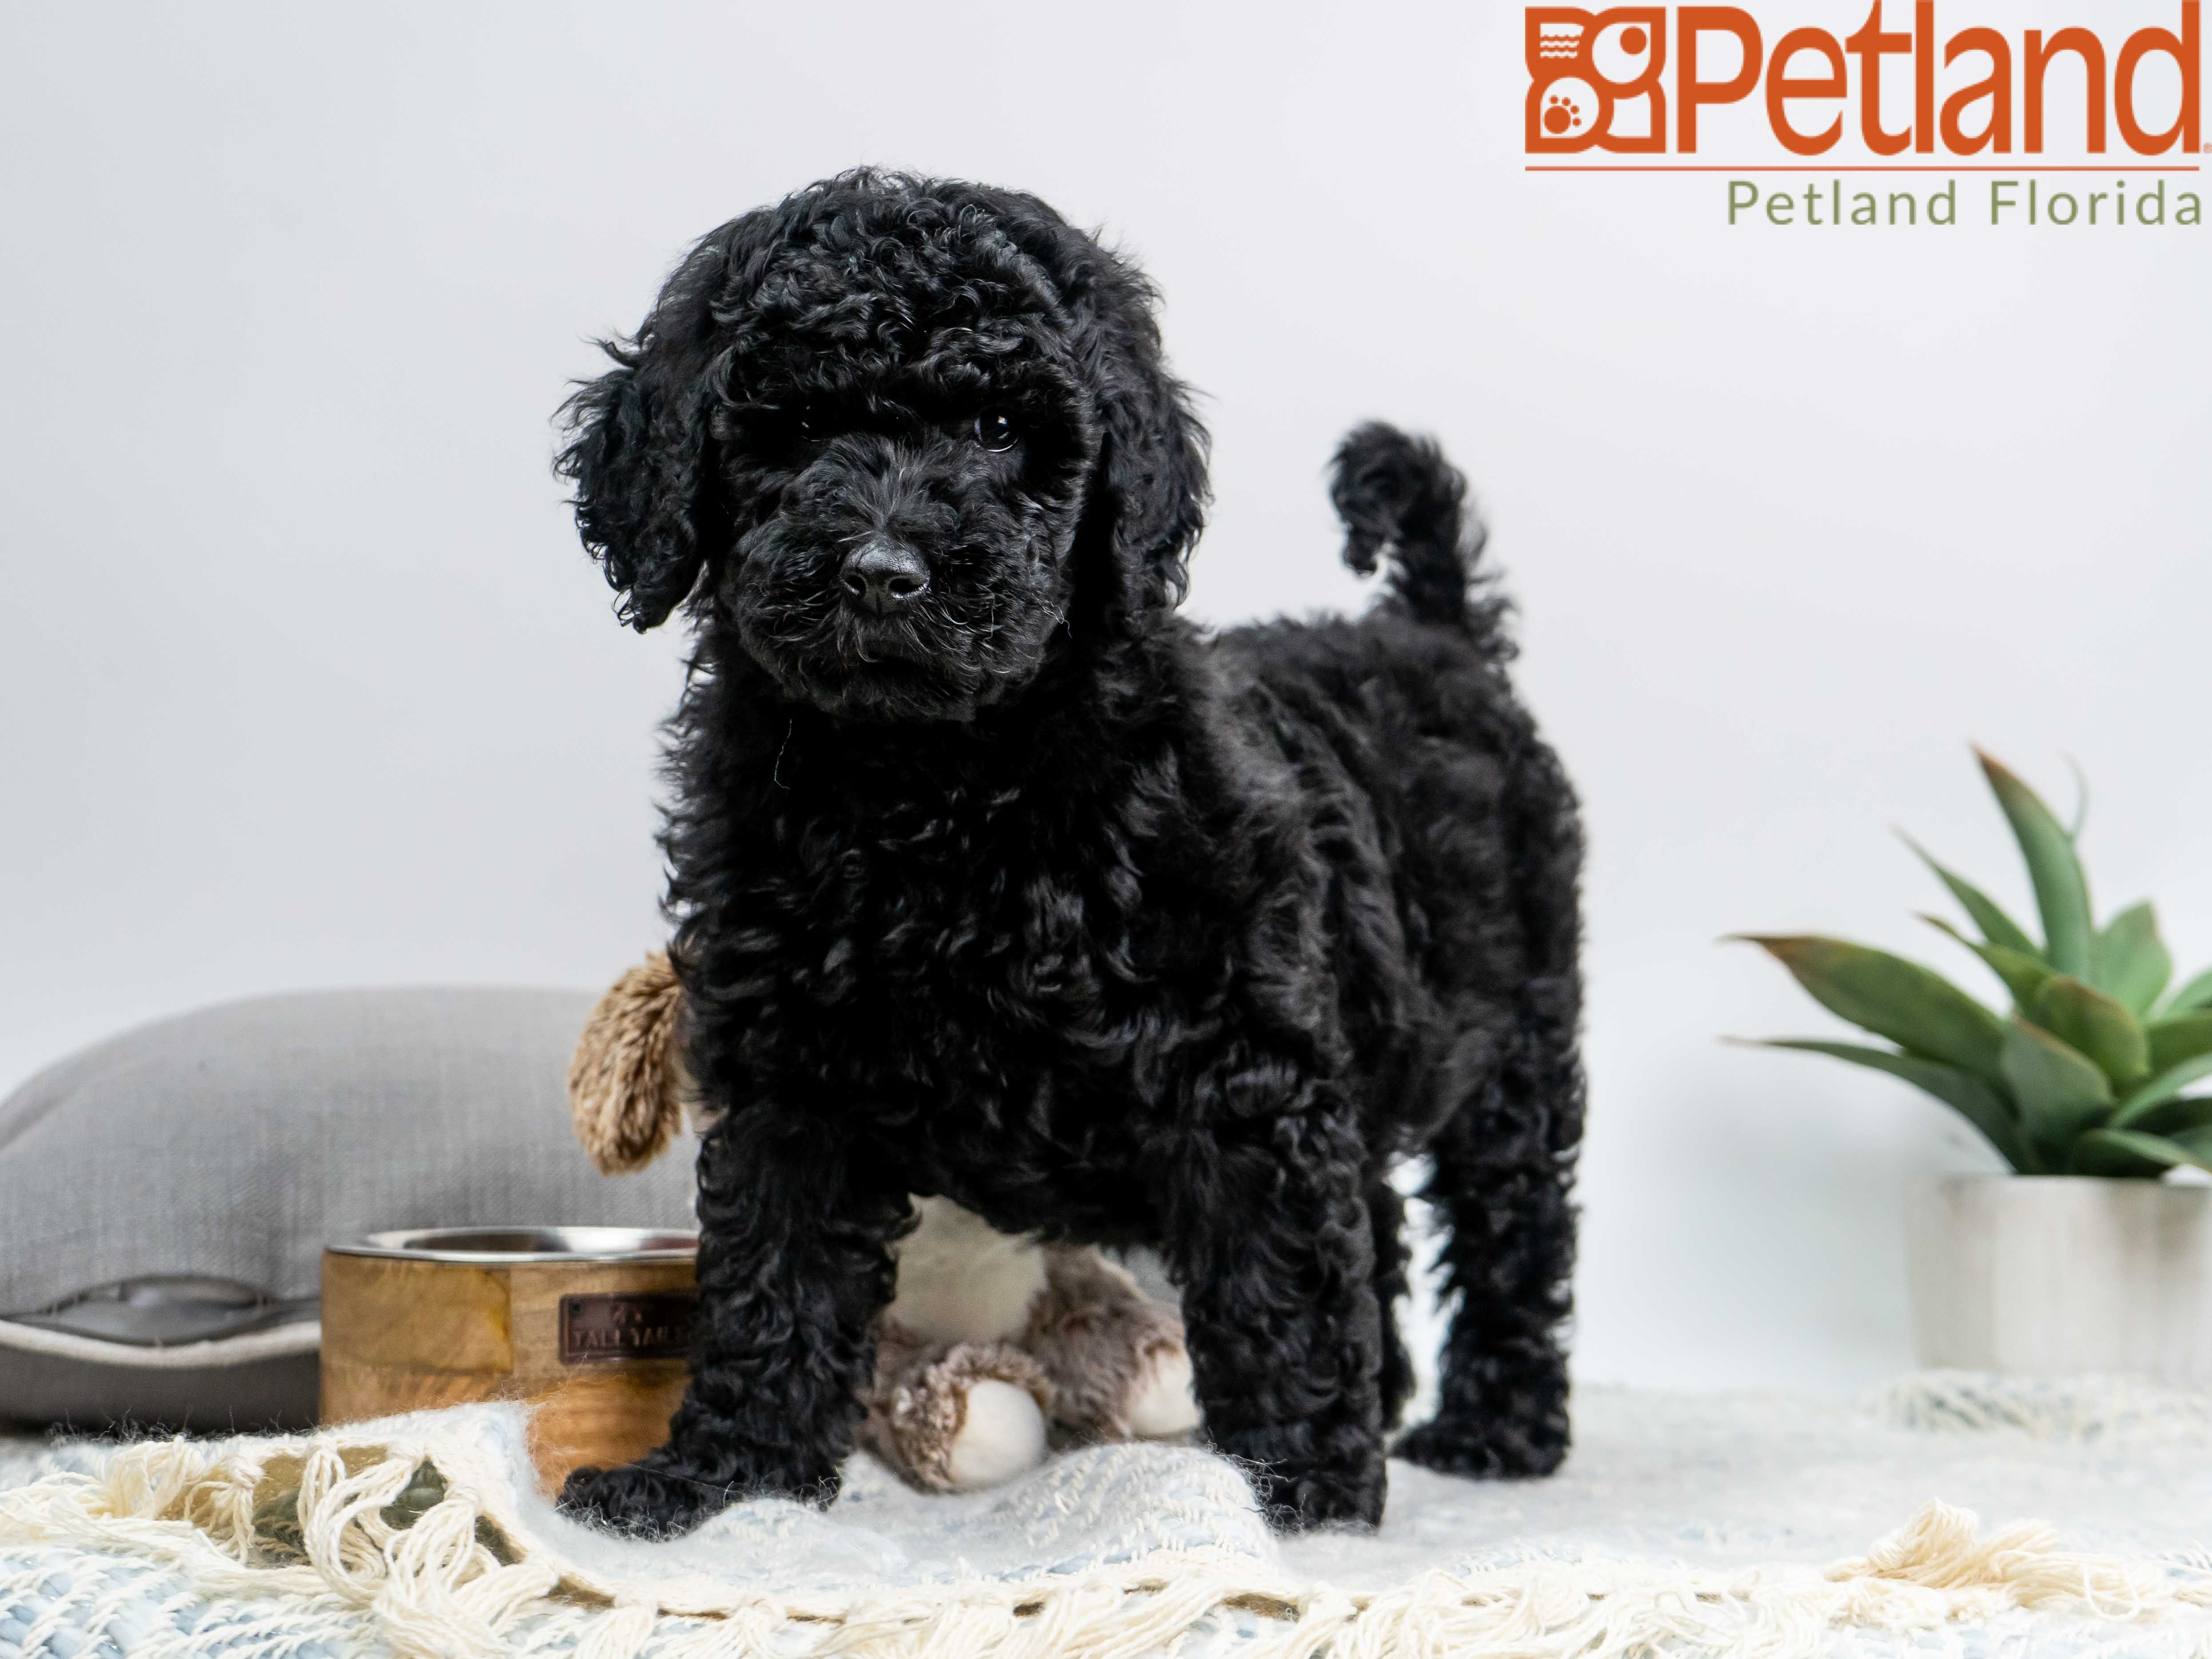 Petland Florida has Goldendoodle puppies for sale! Check